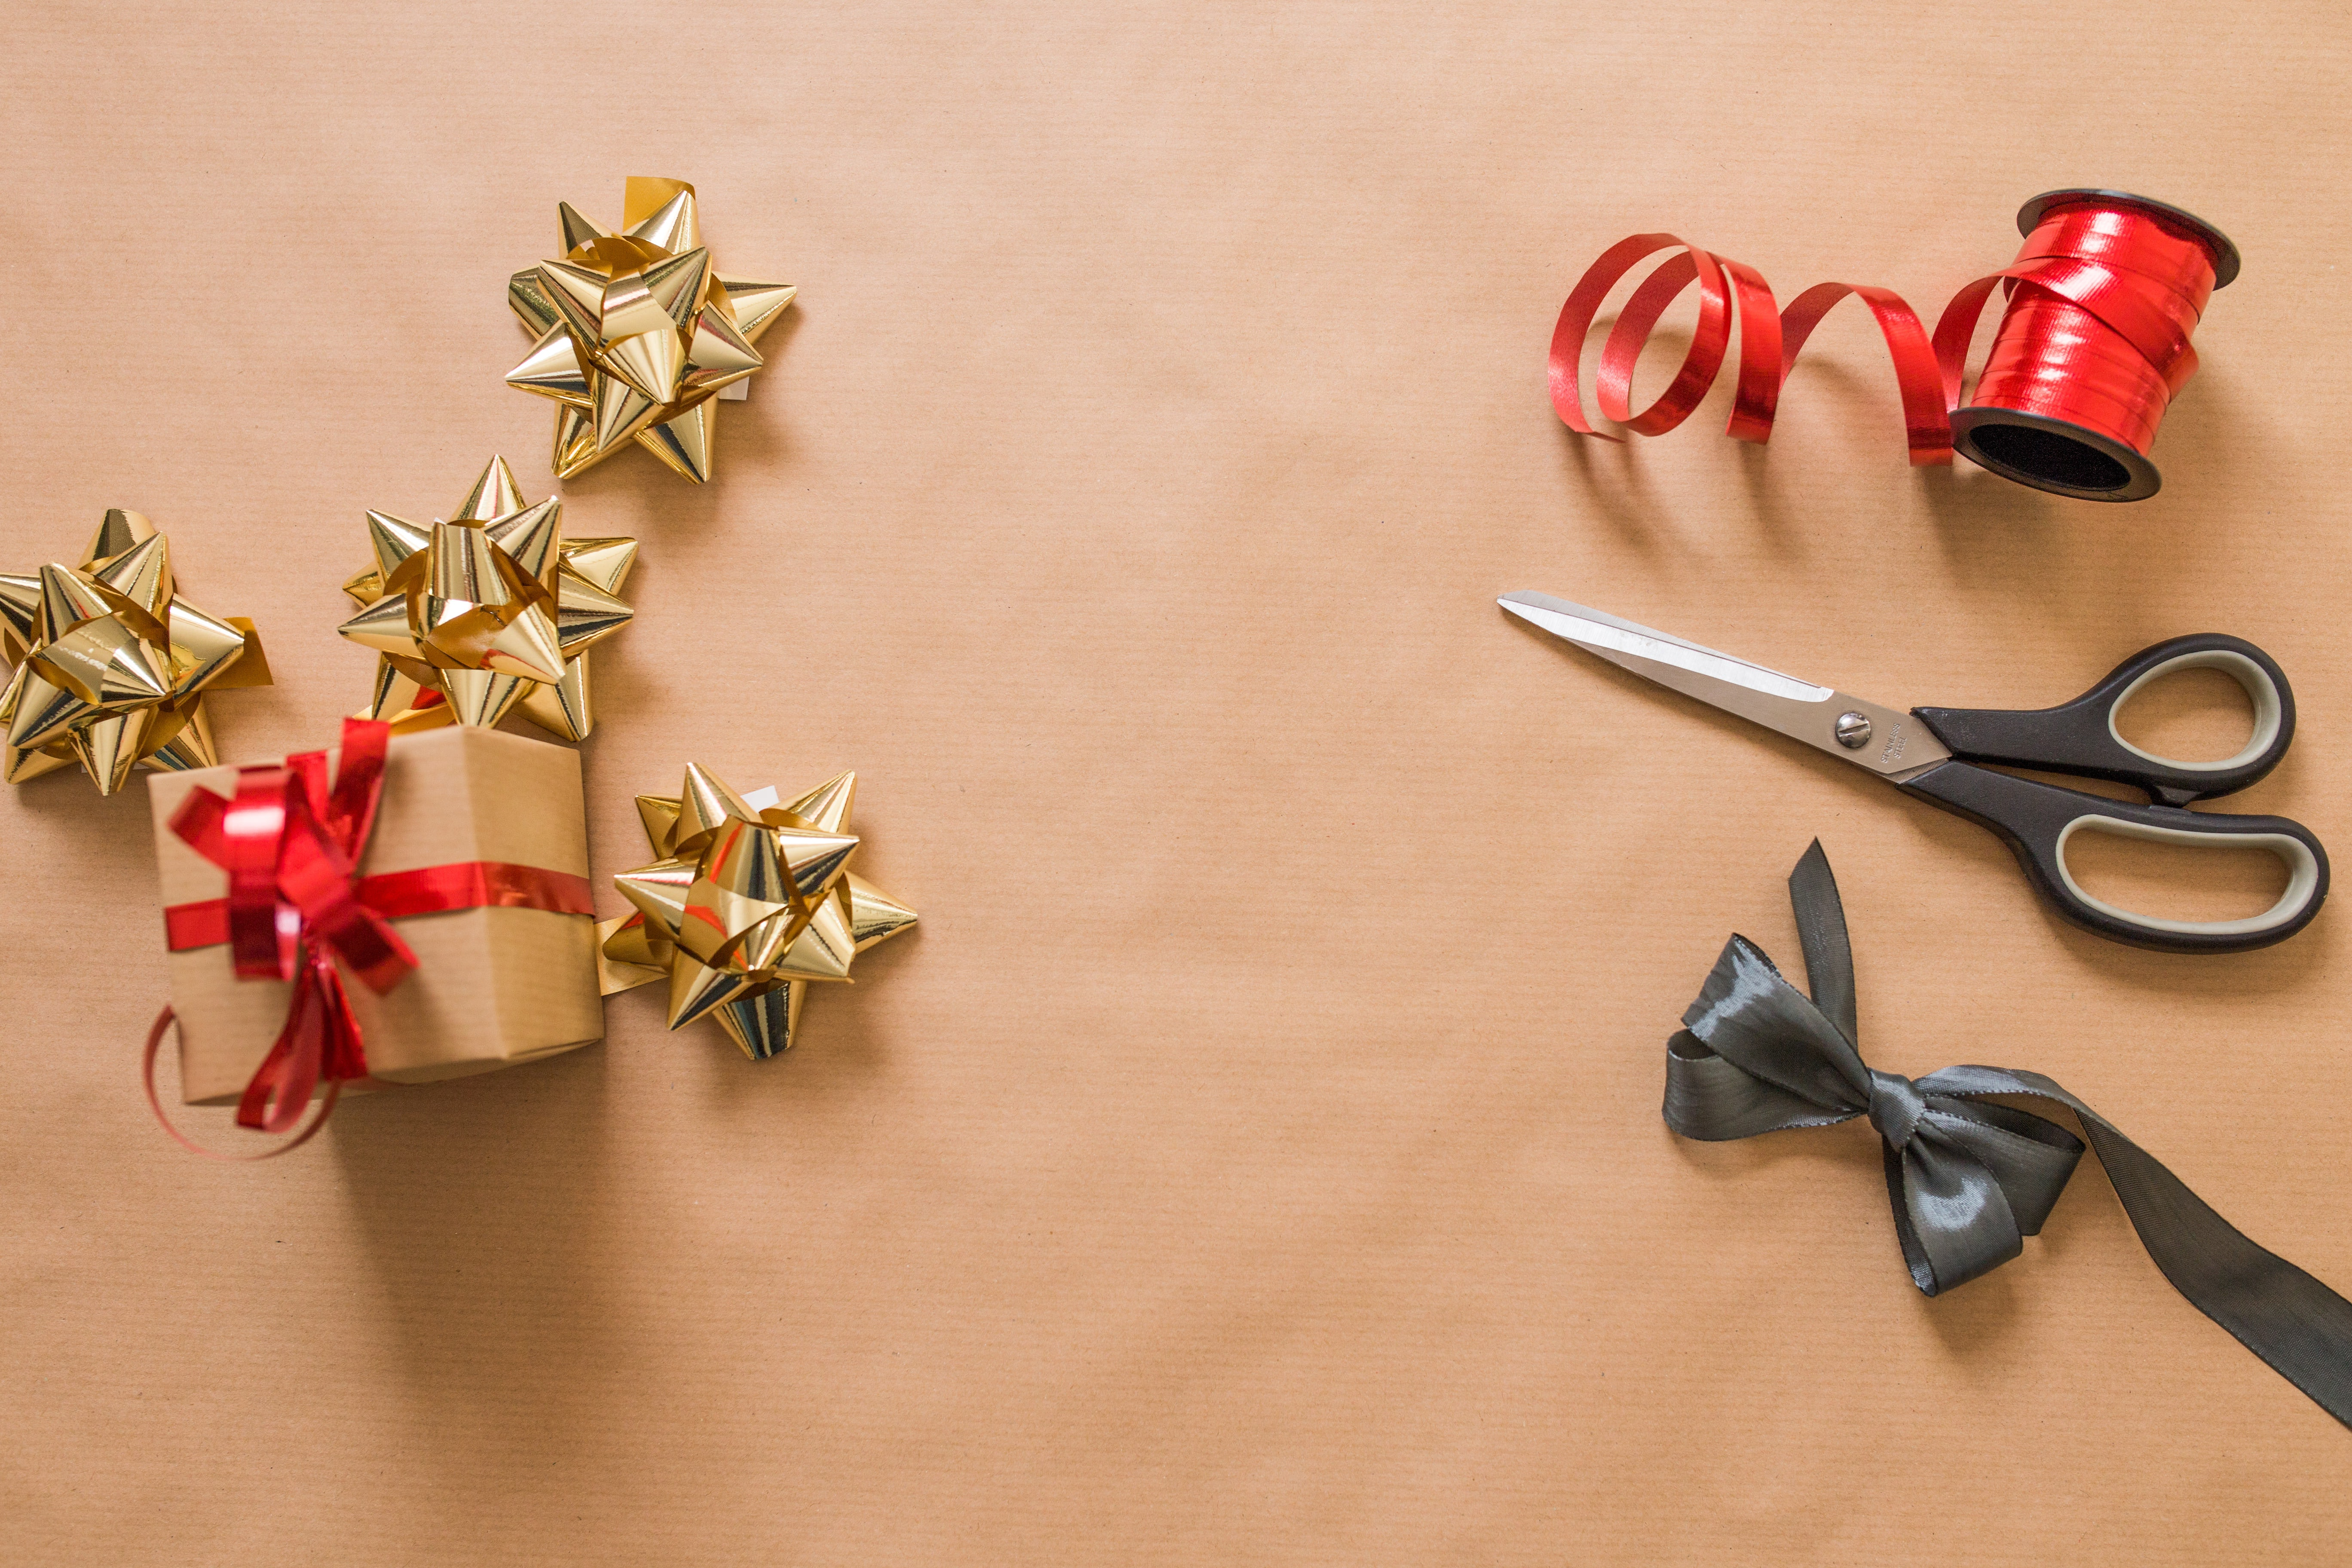 golden bows, red ribbon, and a pair of scissors on top of a light brown background